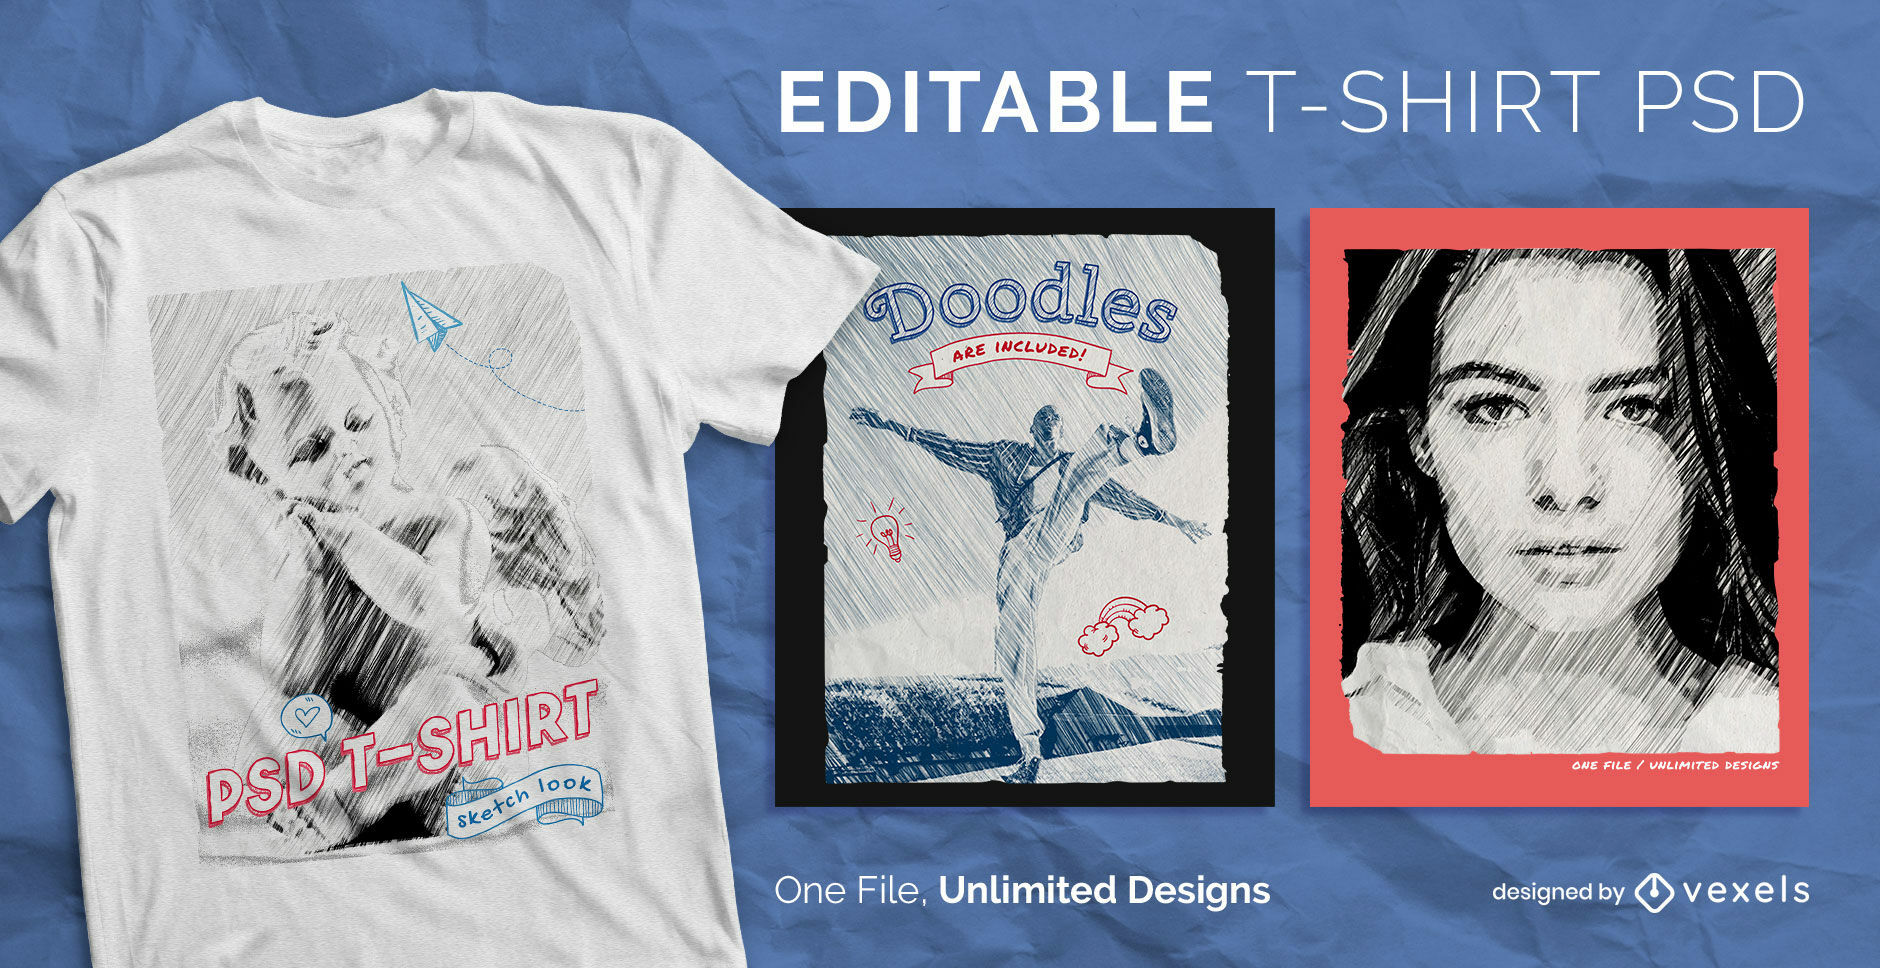 People sketches and doodles scalable t-shirt psd